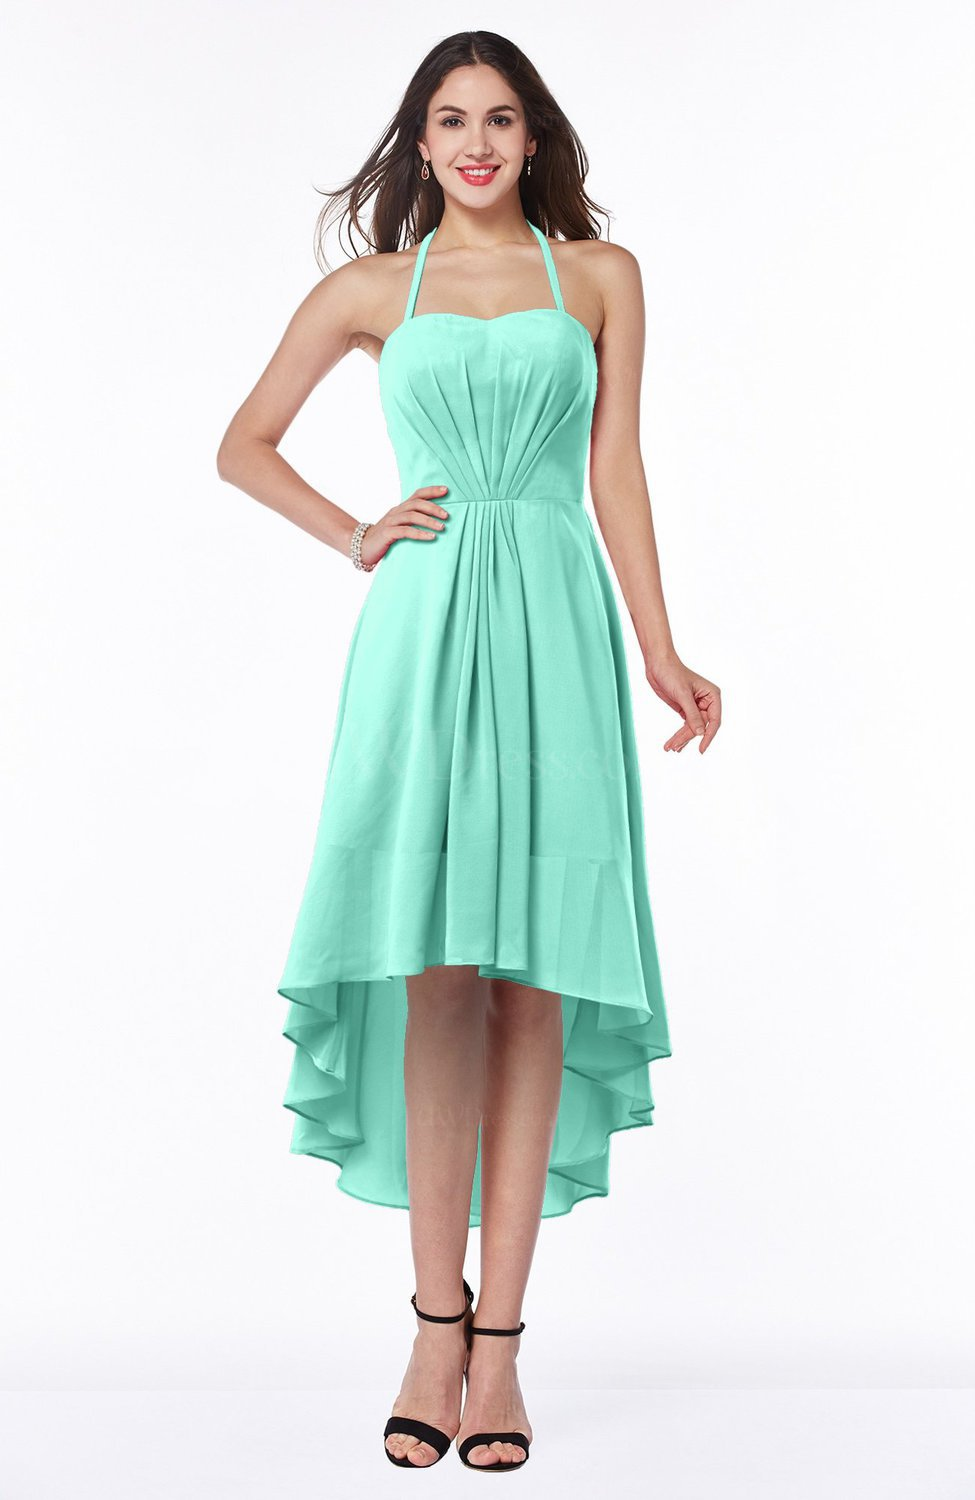 Plus size bridesmaid dresses uwdress seafoam green casual a line sleeveless zip up chiffon asymmetric plus size bridesmaid dresses ombrellifo Choice Image